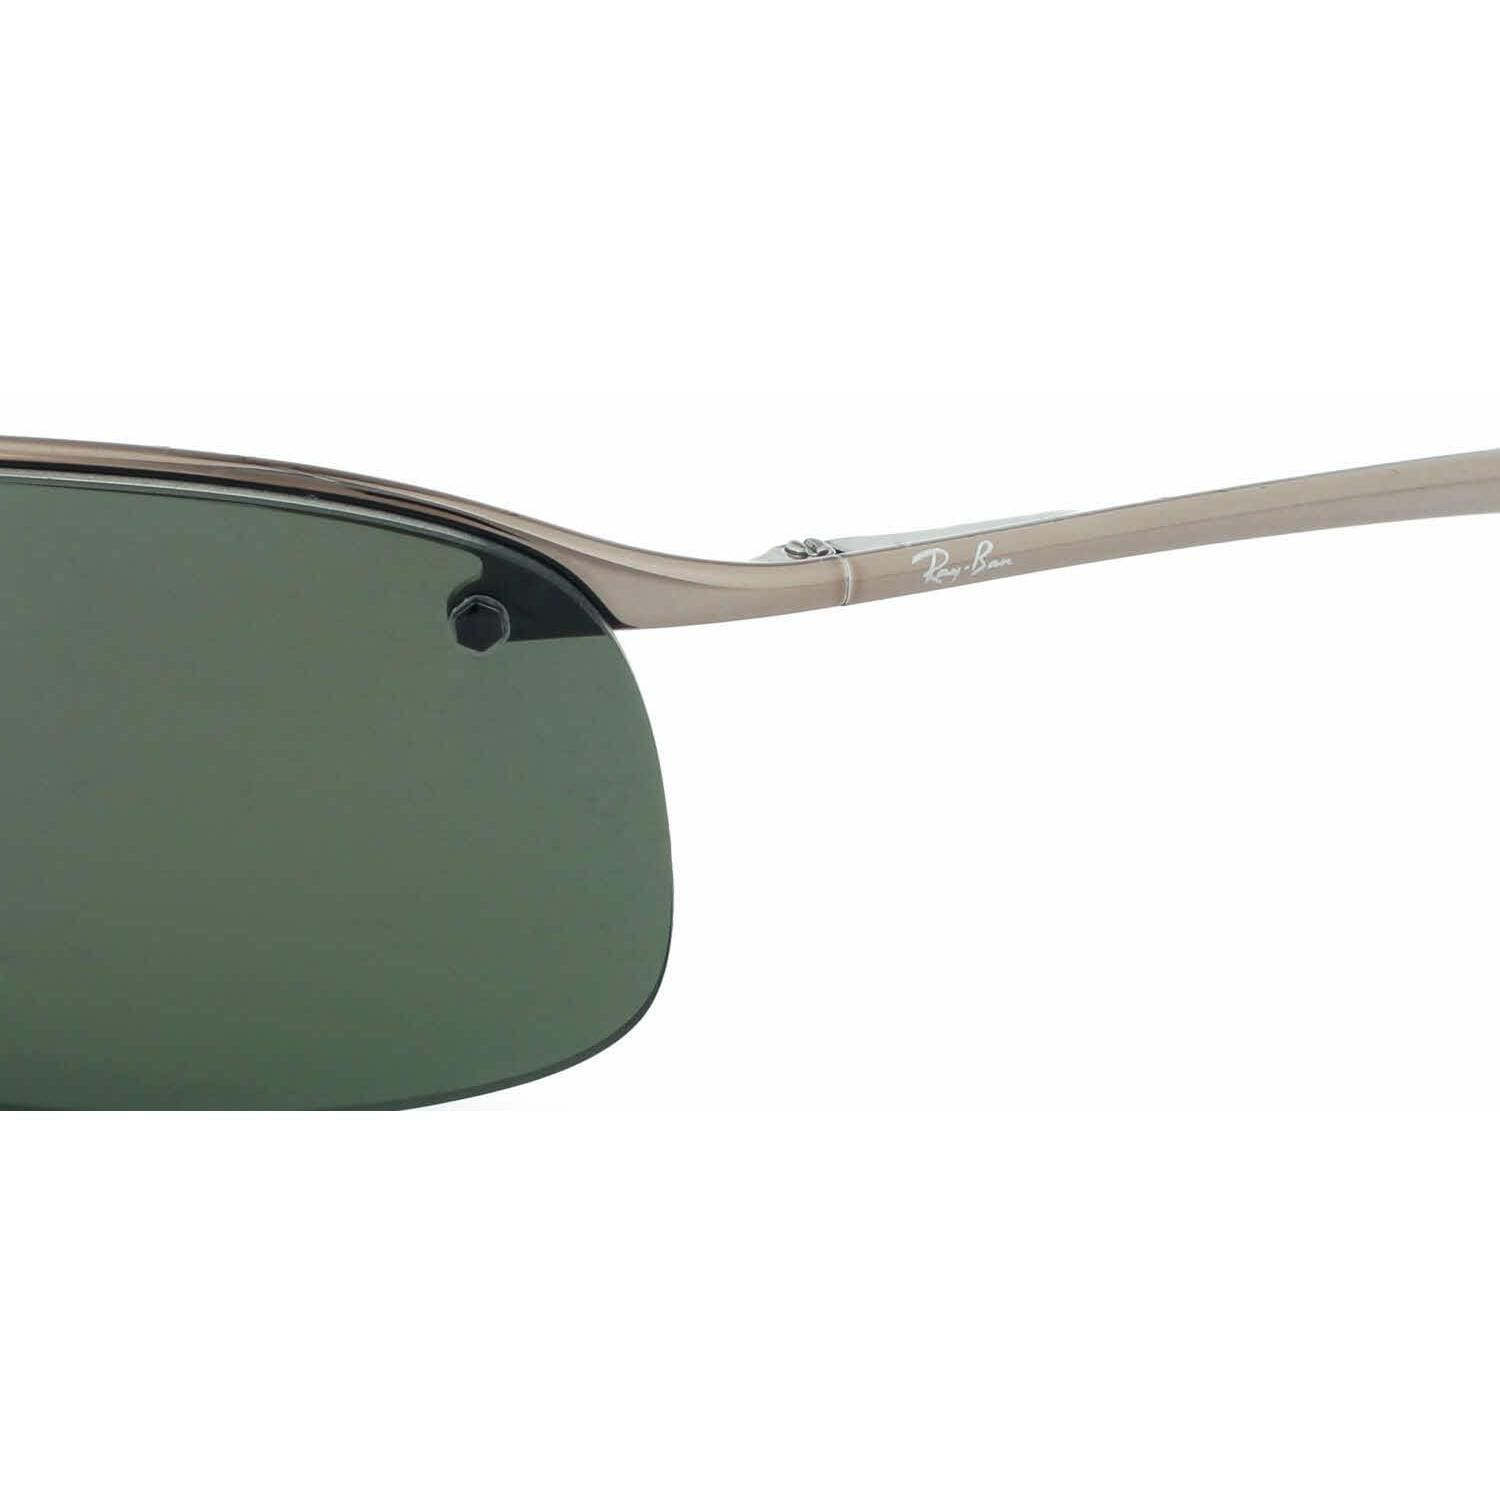 c46dbaa749af3 Shop Ray Ban Mens RB3183 004 9A Gunmetal Metal Rectangle Sunglasses - Green  - Free Shipping Today - Overstock.com - 13471708